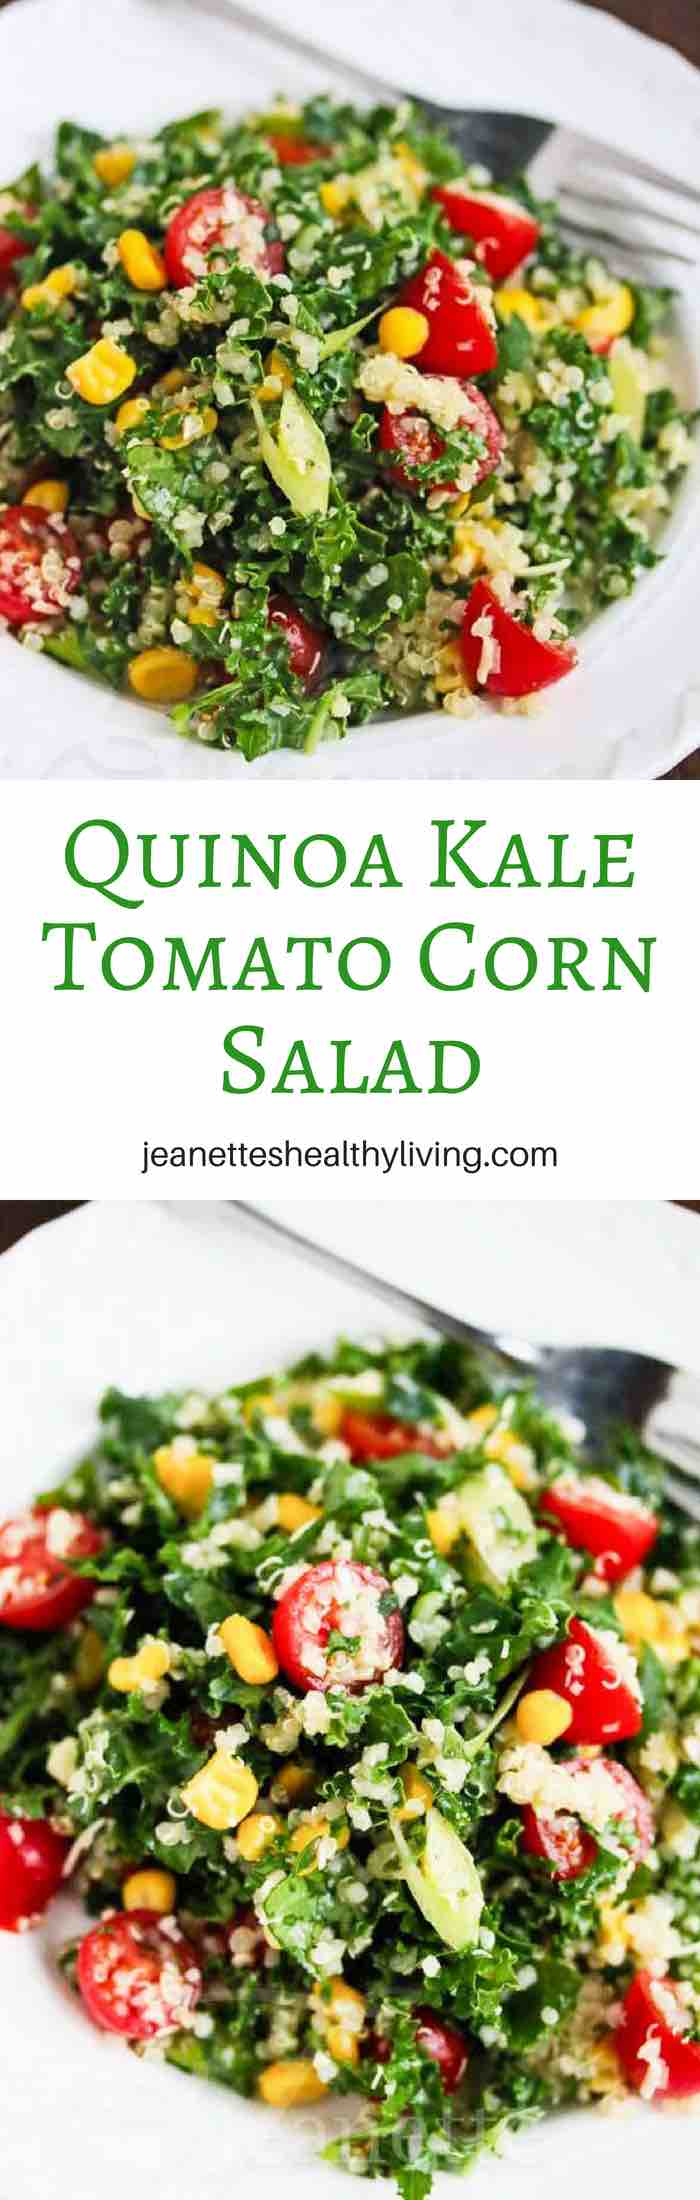 Quinoa Kale Tomato Corn Salad - light, healthy and delicious main course salad